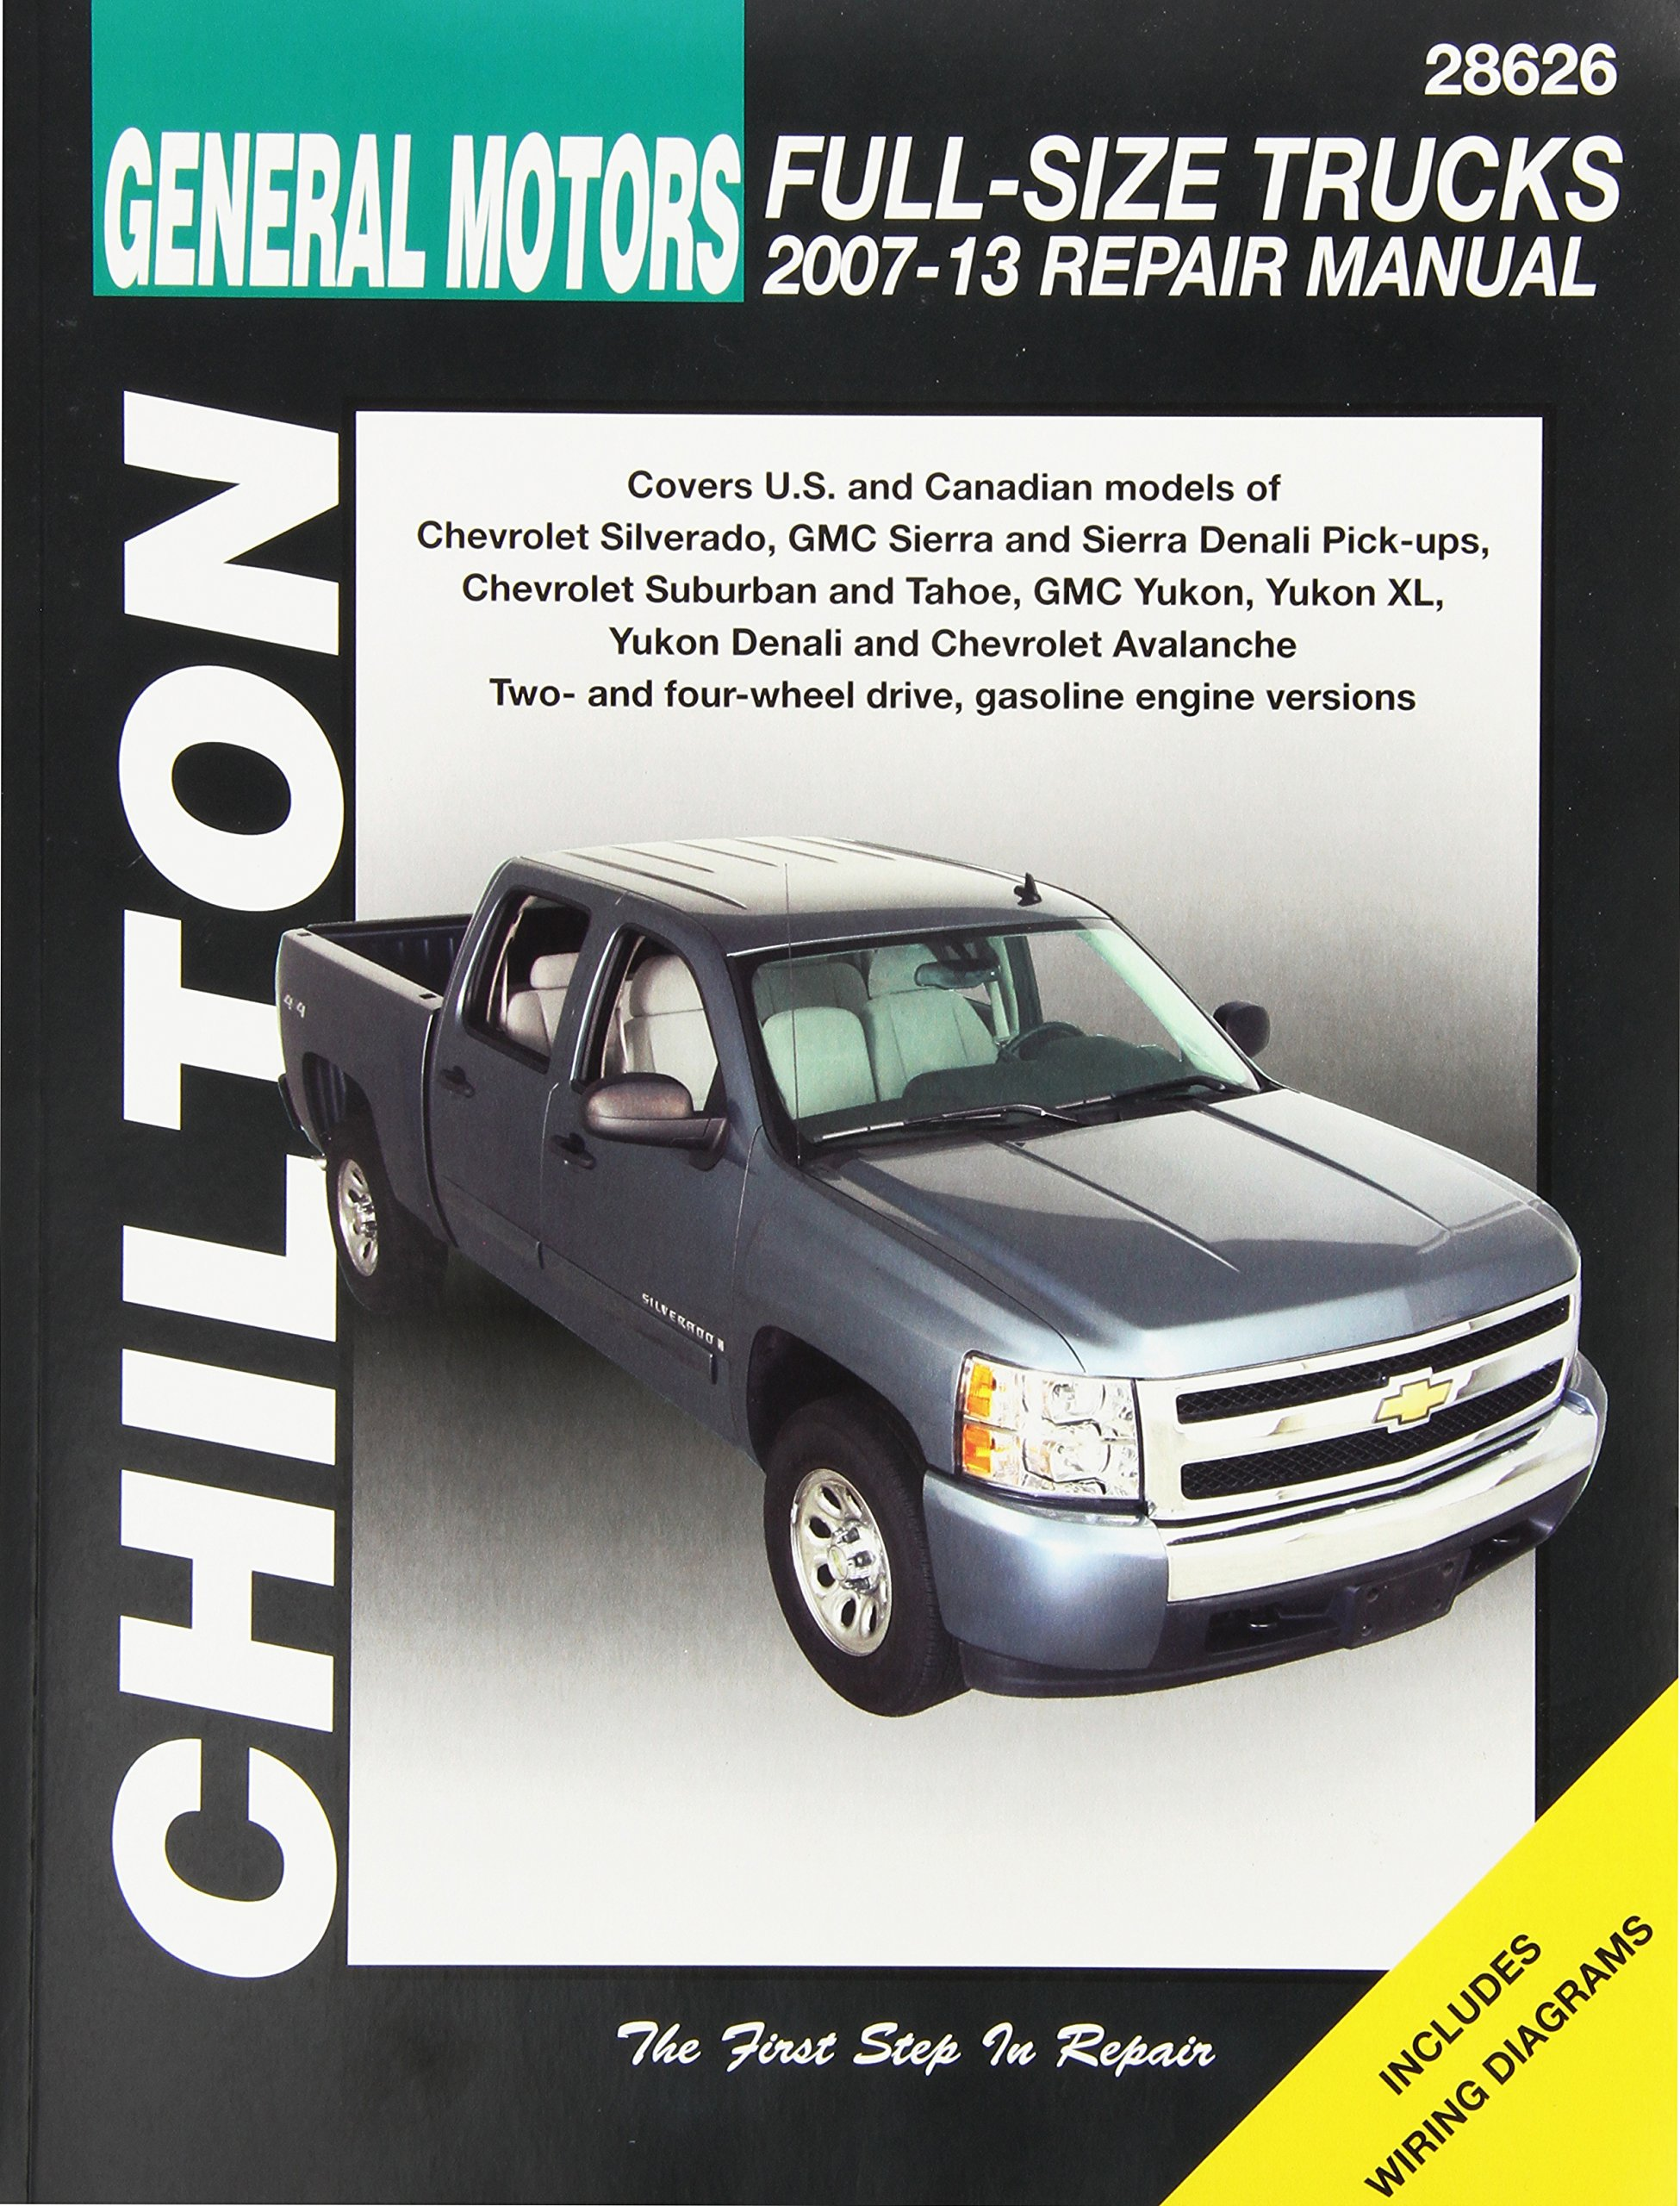 1999 gmc service manual s today manual guide trends sample u2022 rh brookejasmine co 2003 gmc safari service manual 2003 gmc safari owners manual